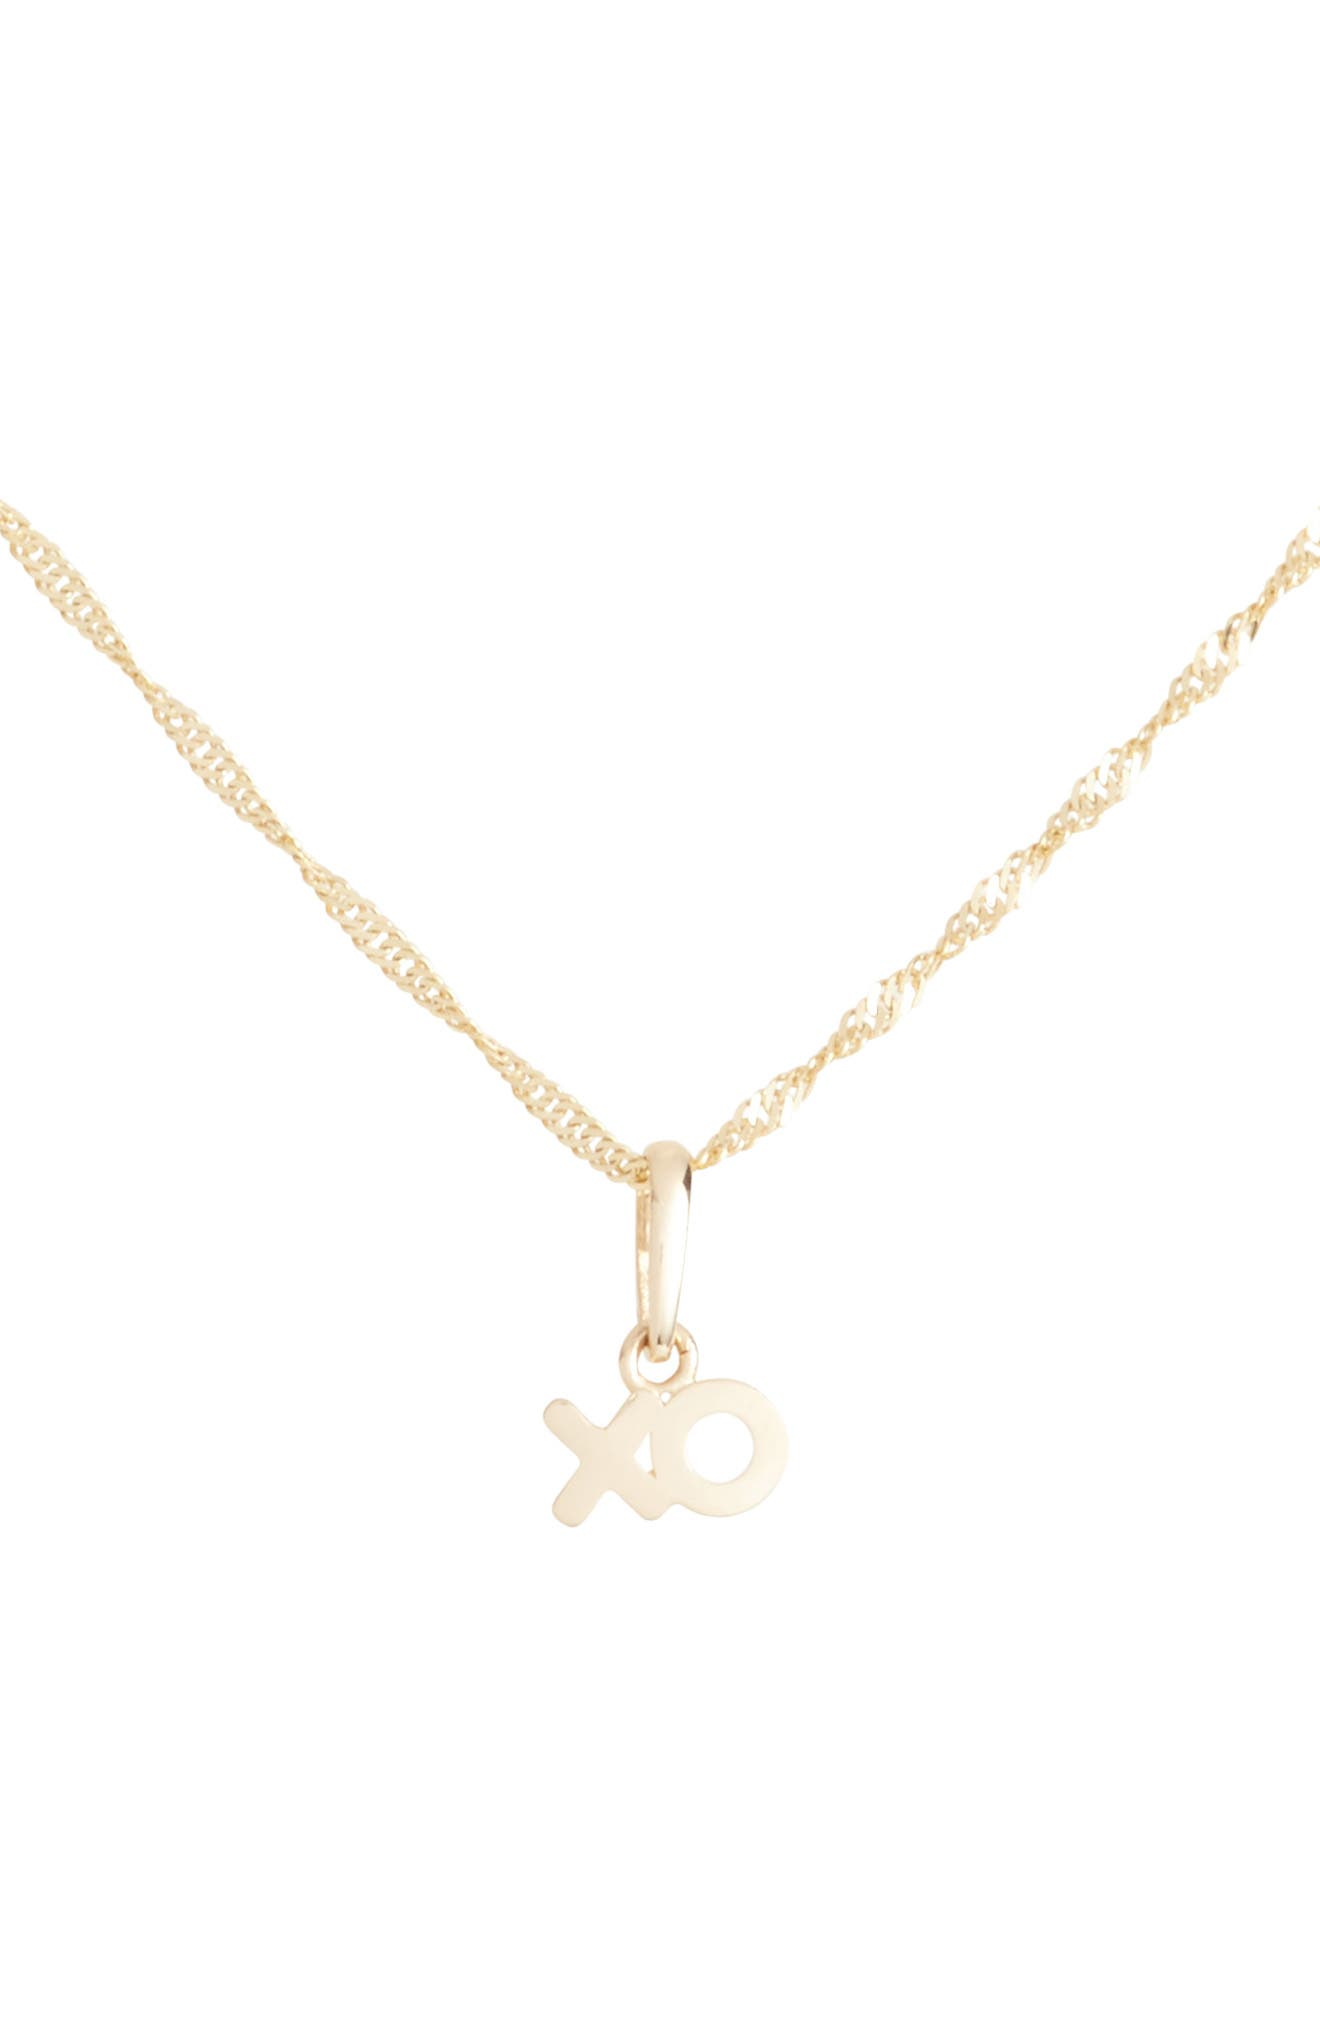 XO Charm Short Pendant Necklace,                         Main,                         color, YELLOW GOLD